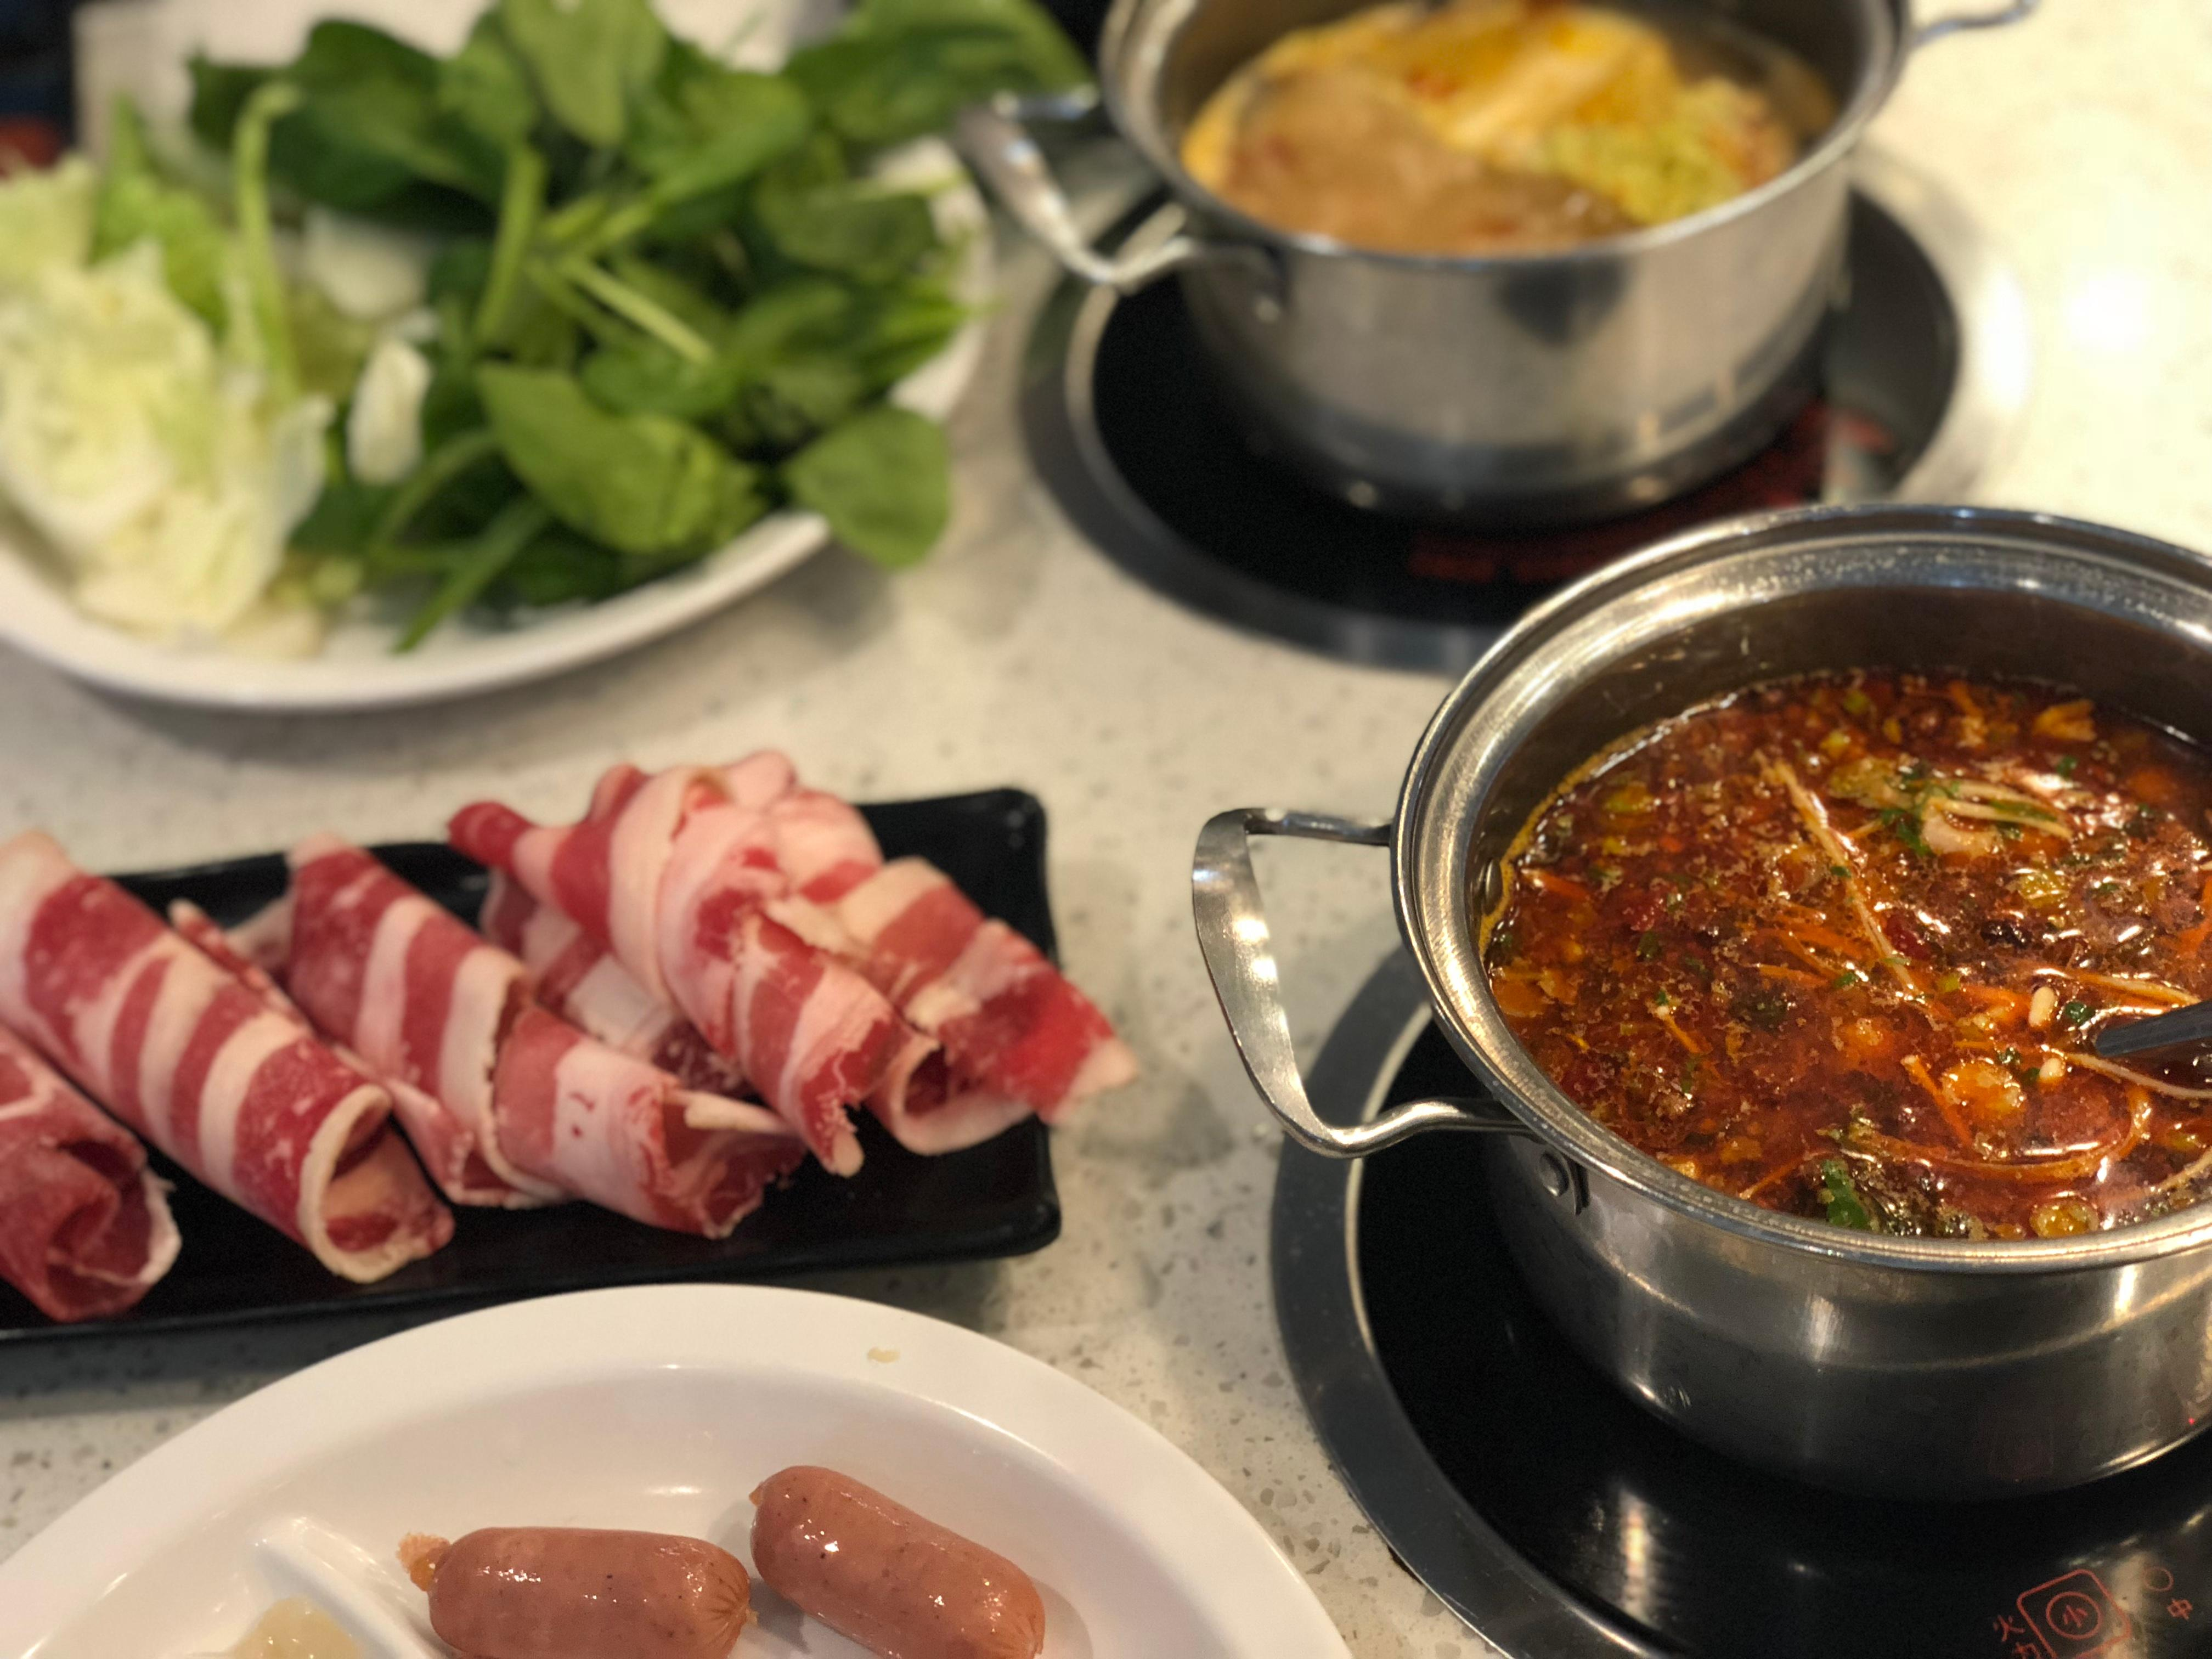 For more modern digs, try the new Urban Hot Pot, which features endless hot pot and toppings for a set fee, making it a great option for groups. (Image: Aparna Krishnamoorthy)